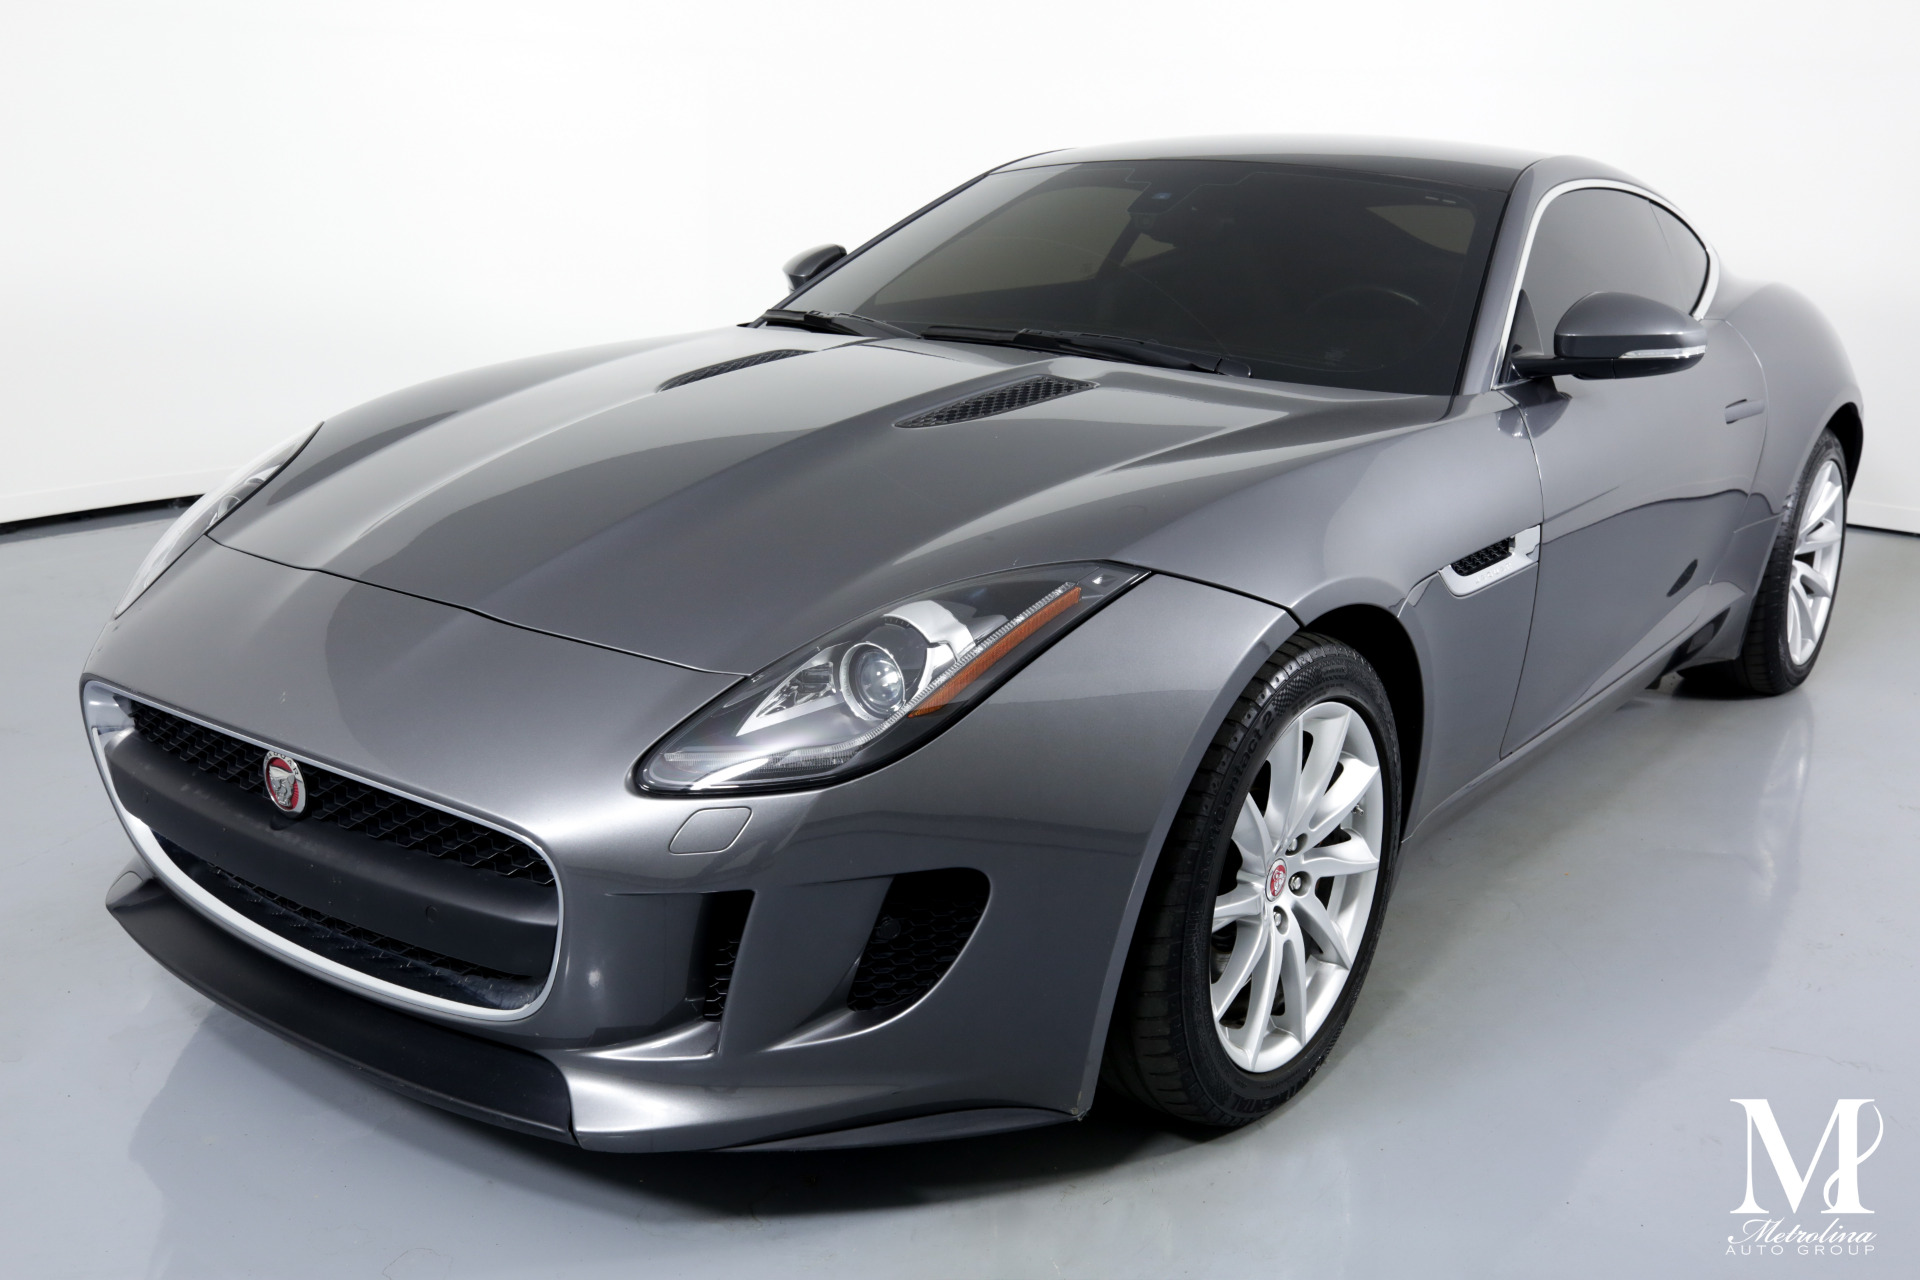 Used 2016 Jaguar F-TYPE for sale $29,996 at Metrolina Auto Group in Charlotte NC 28217 - 4